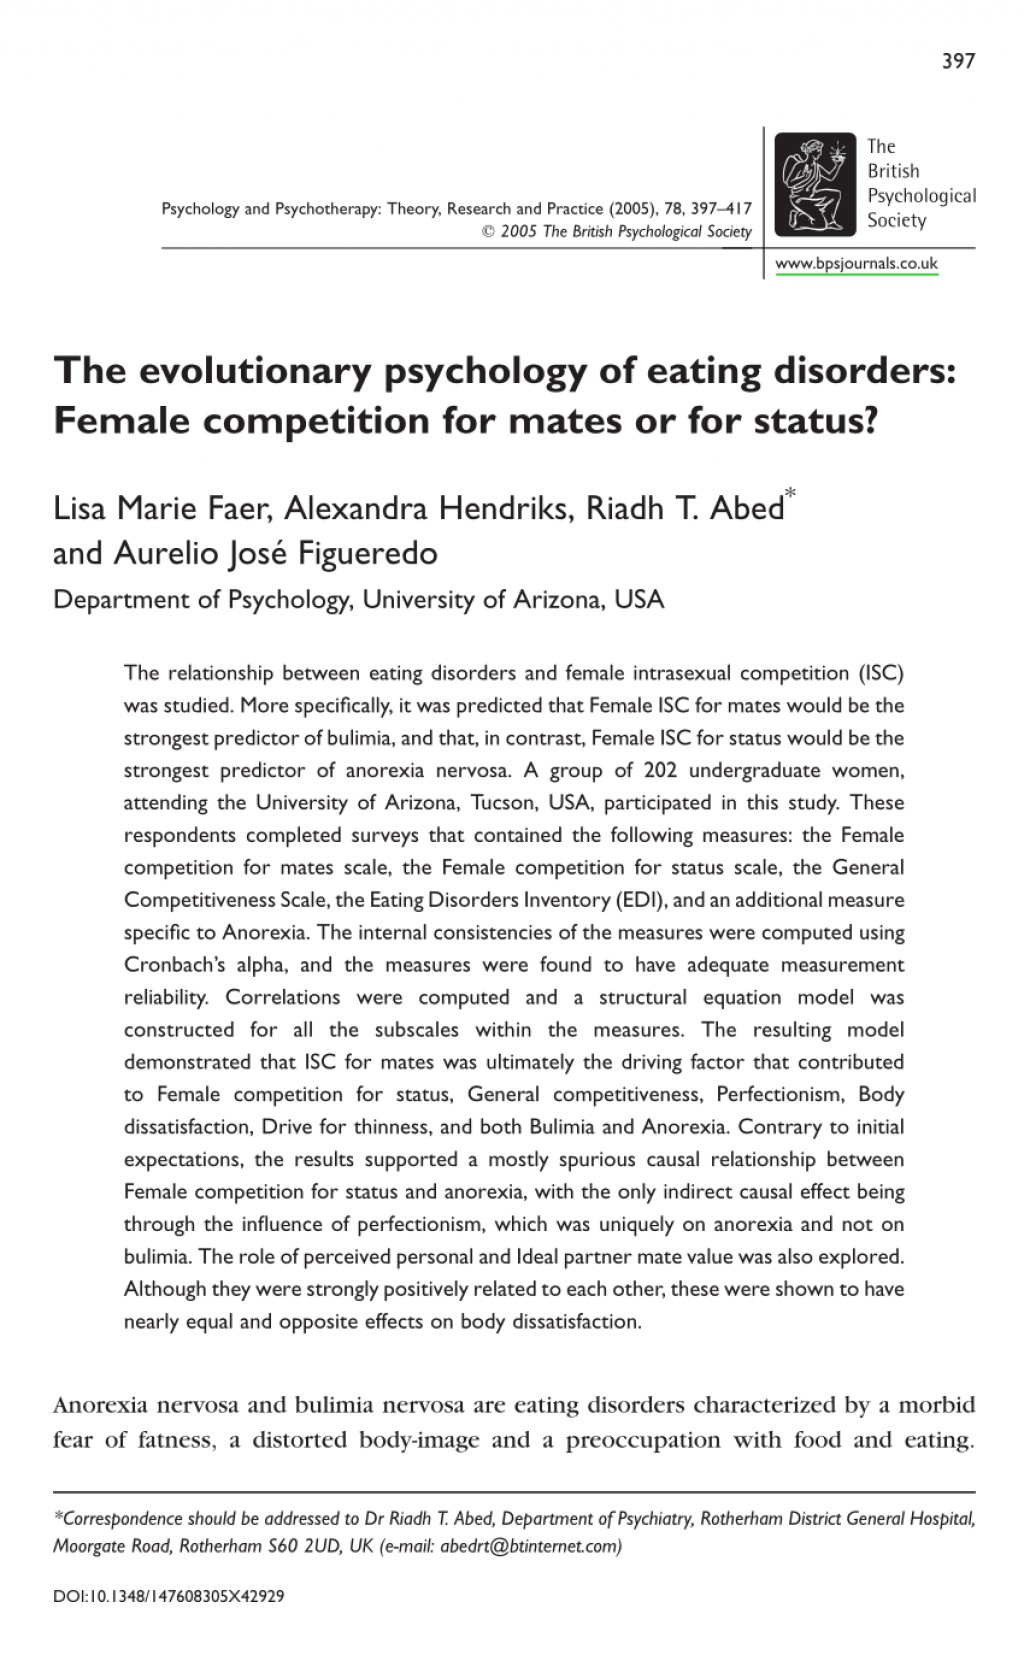 006 Psychology Research Paper On Eating Disorders Top Study Topics Large